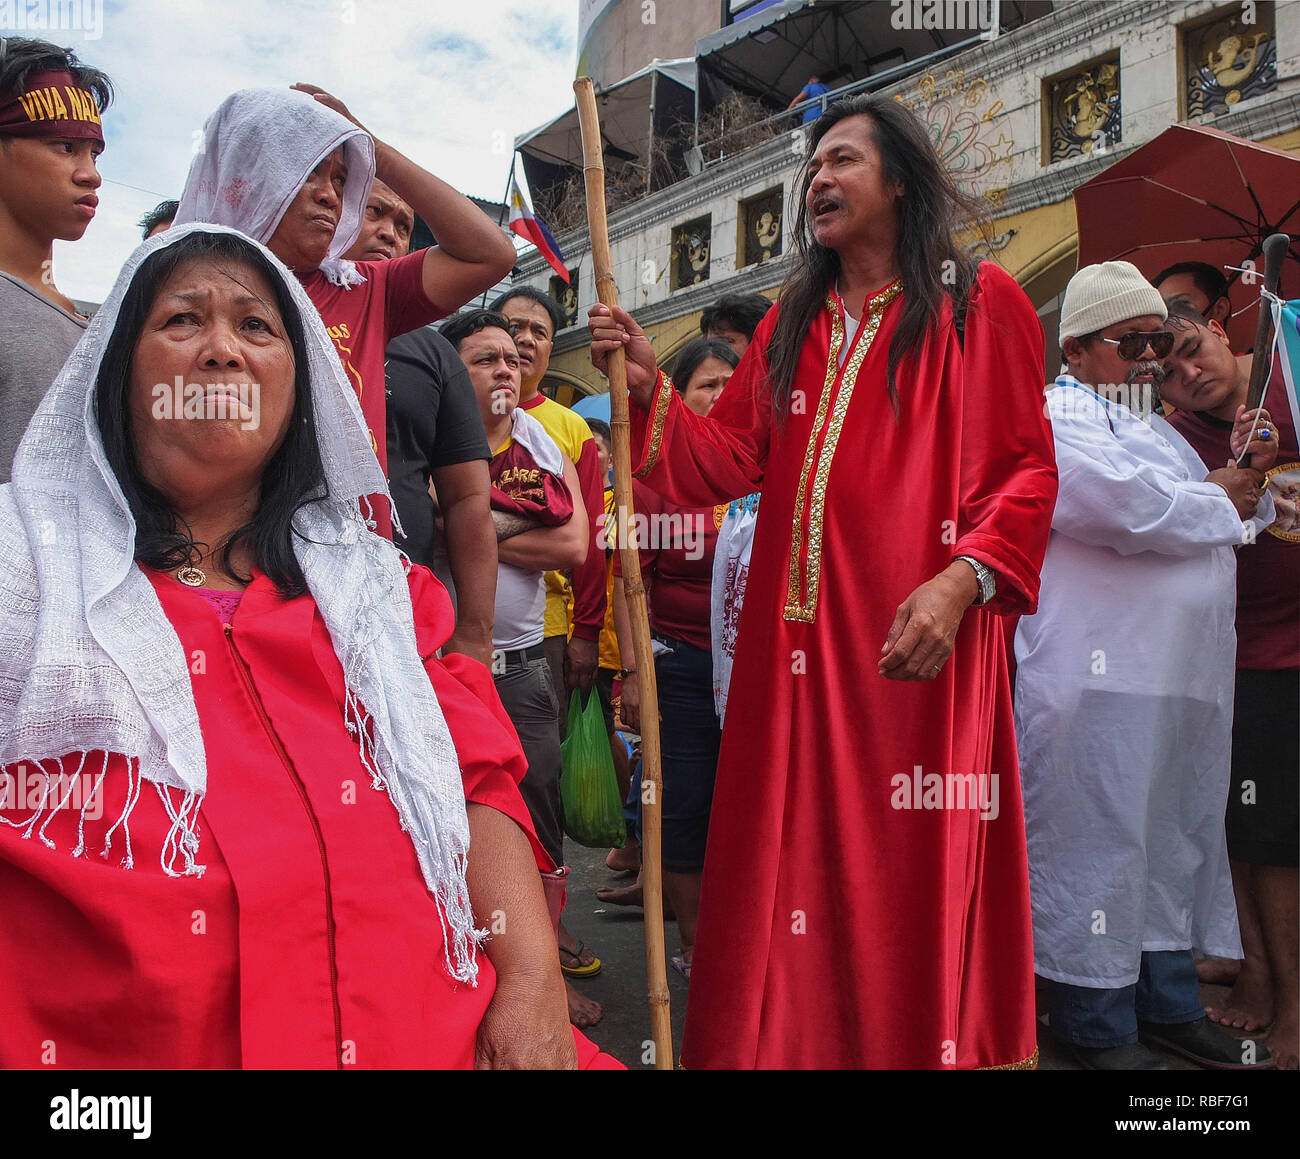 Manila, Philippines  9th Jan, 2019  Many religious sects